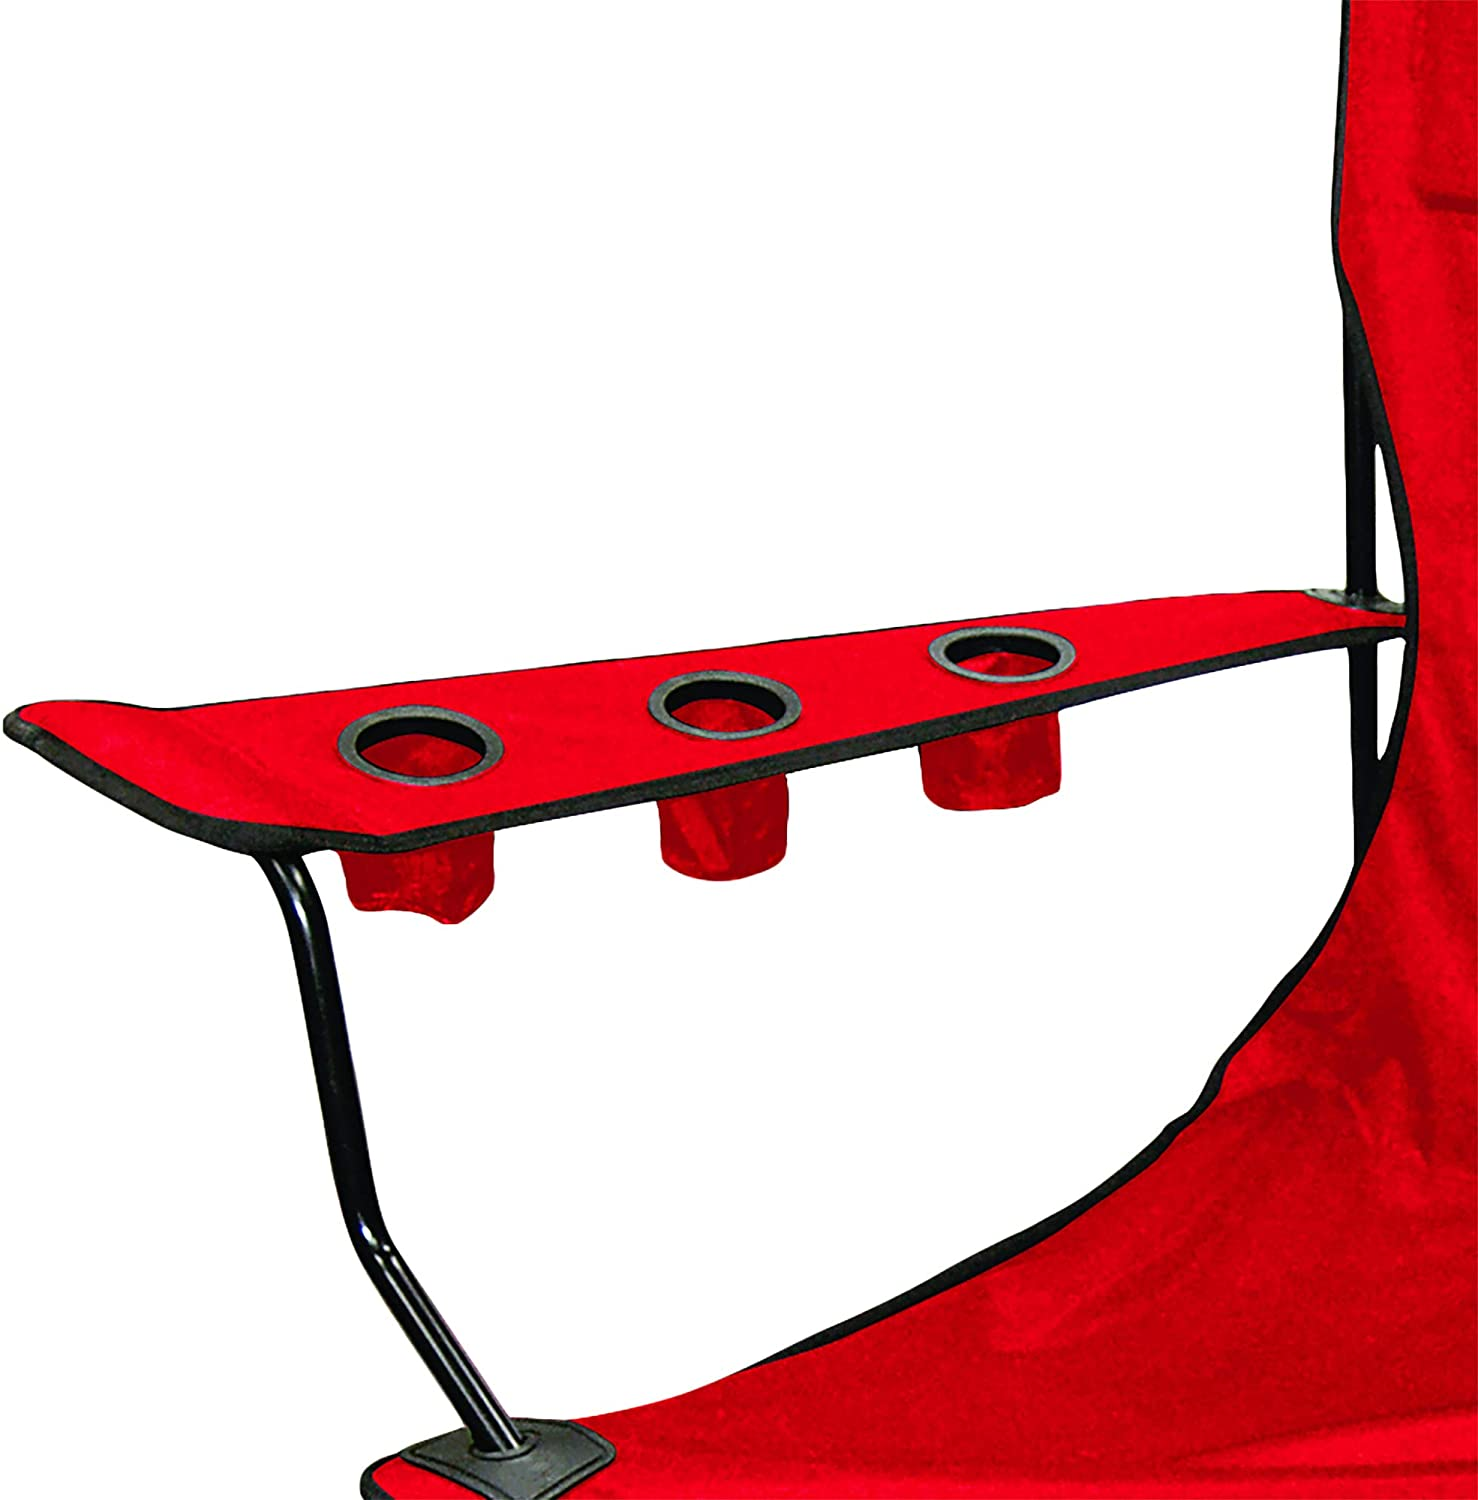 Giant Folding Chair - Giant Travel Chair With 6 Cup Holders